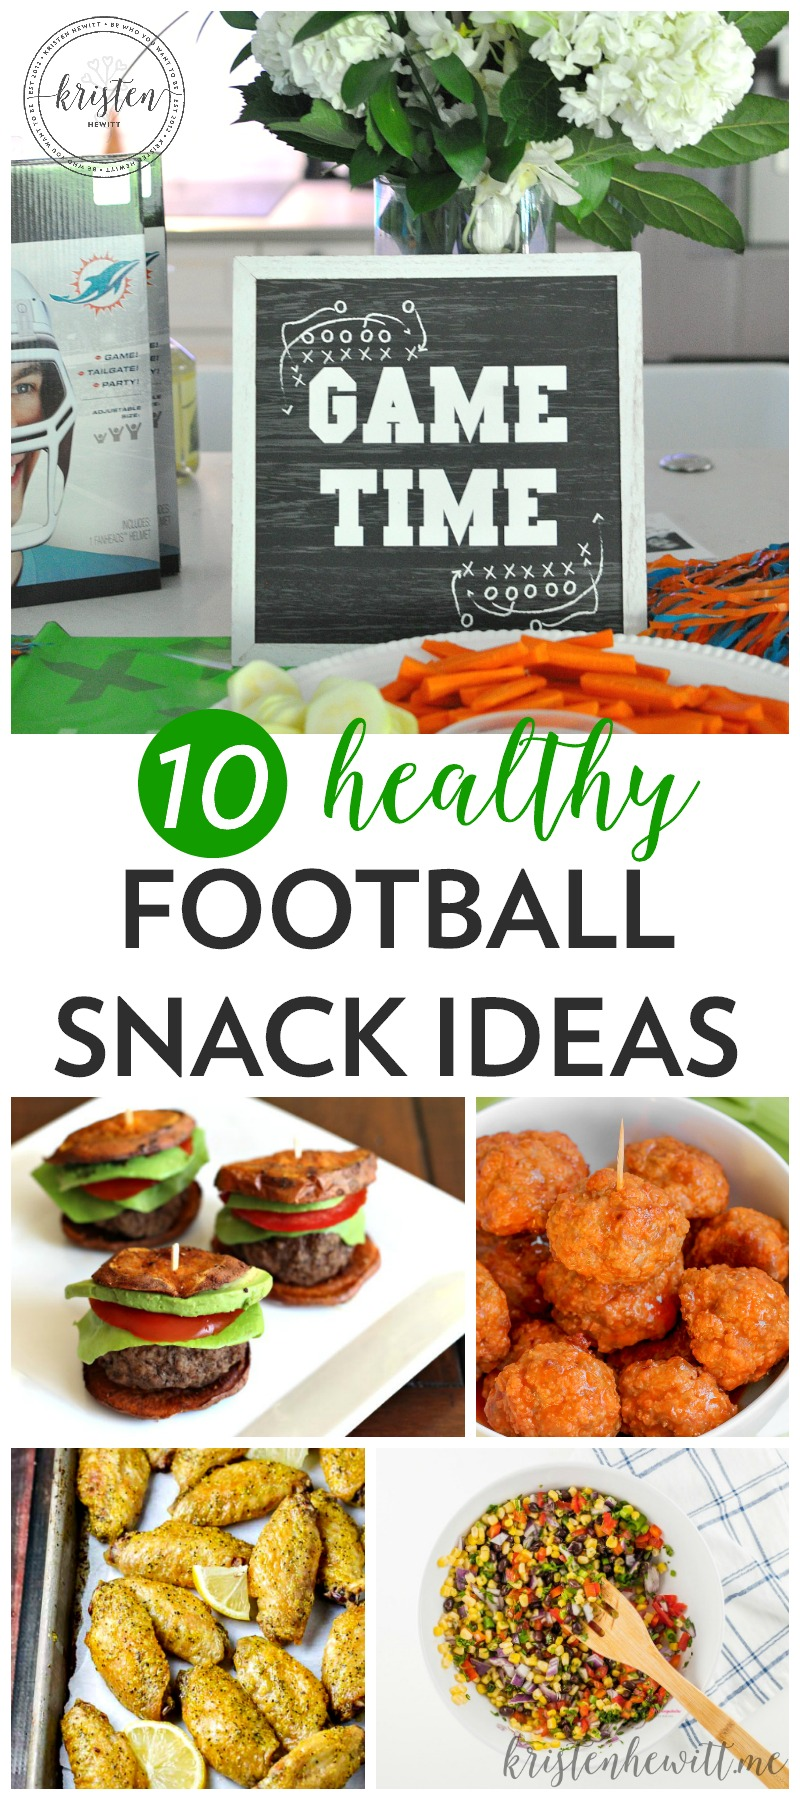 Looking to feed a crowd but still eat clean? Try these 10 healthy football snacks and check out these cute game day party ideas!